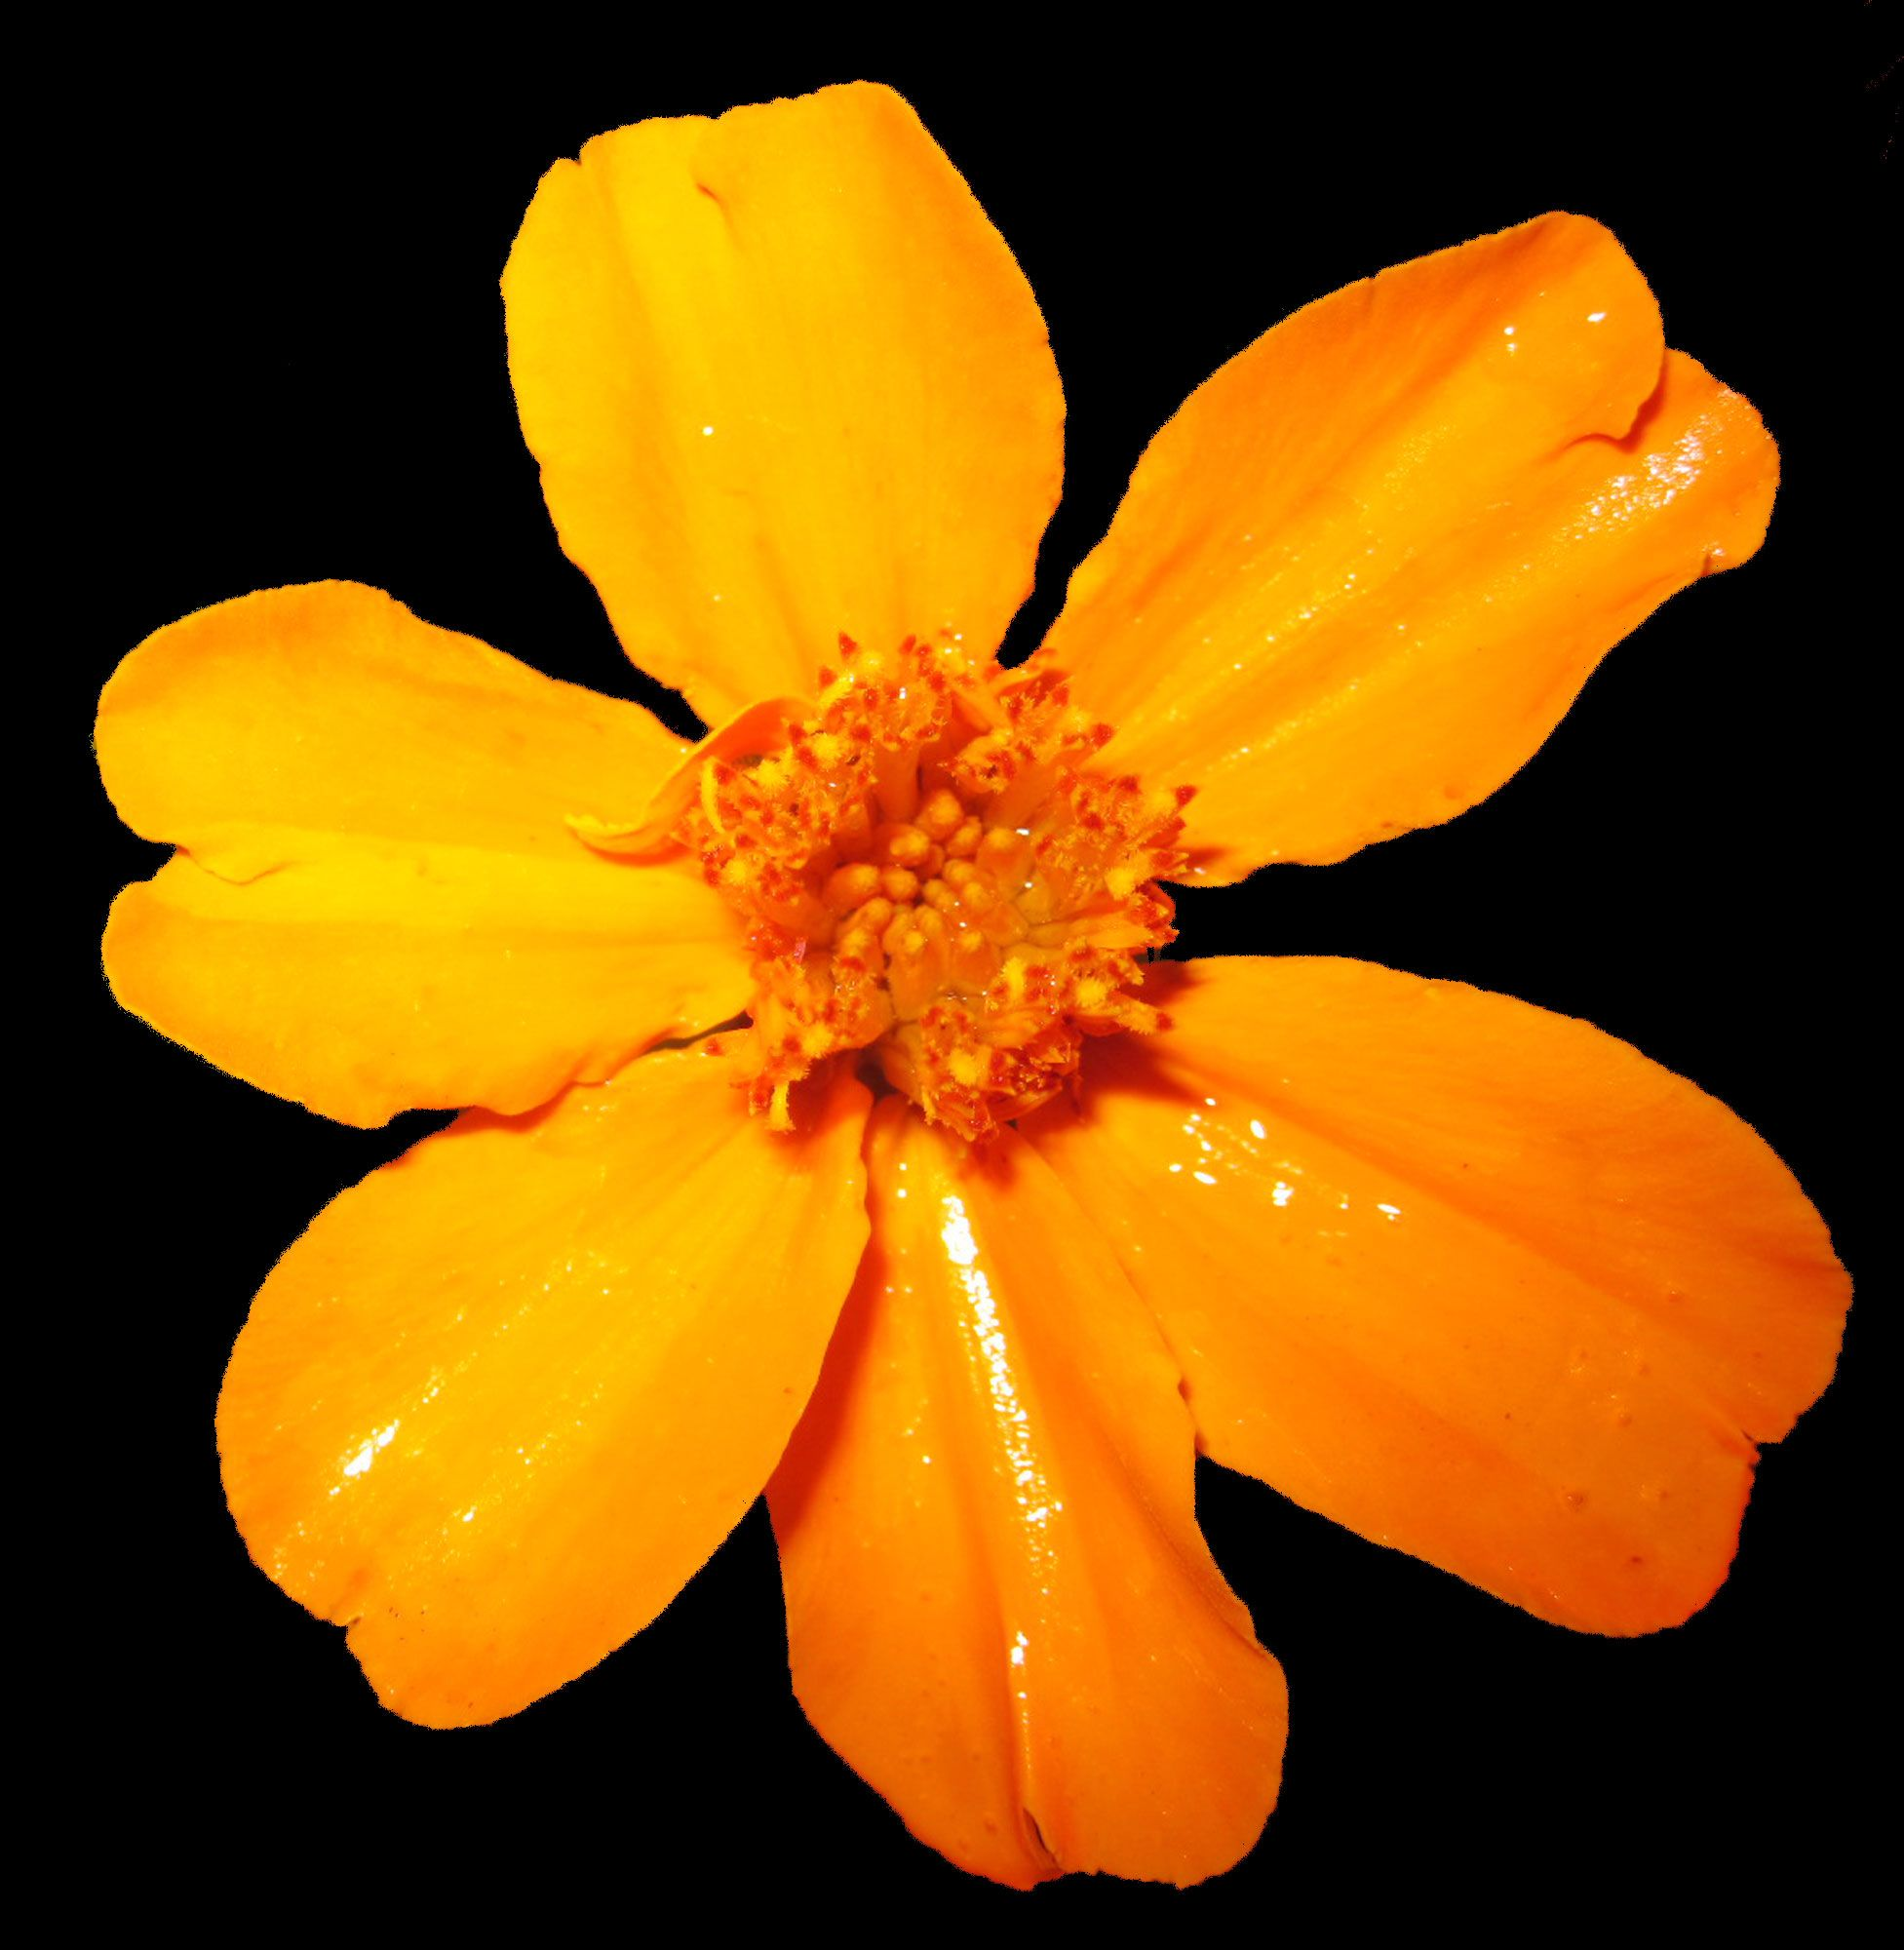 The bold, orange/yellow hue of this flower makes a bold statement against a dark black background! The water droplets from being freshly watered can be seen, along with all of the natural detail of this amazing flower. This original photograph was taken by Brittany Valente for Dream By Day Creations.  http://www.dreambydaycreations.com